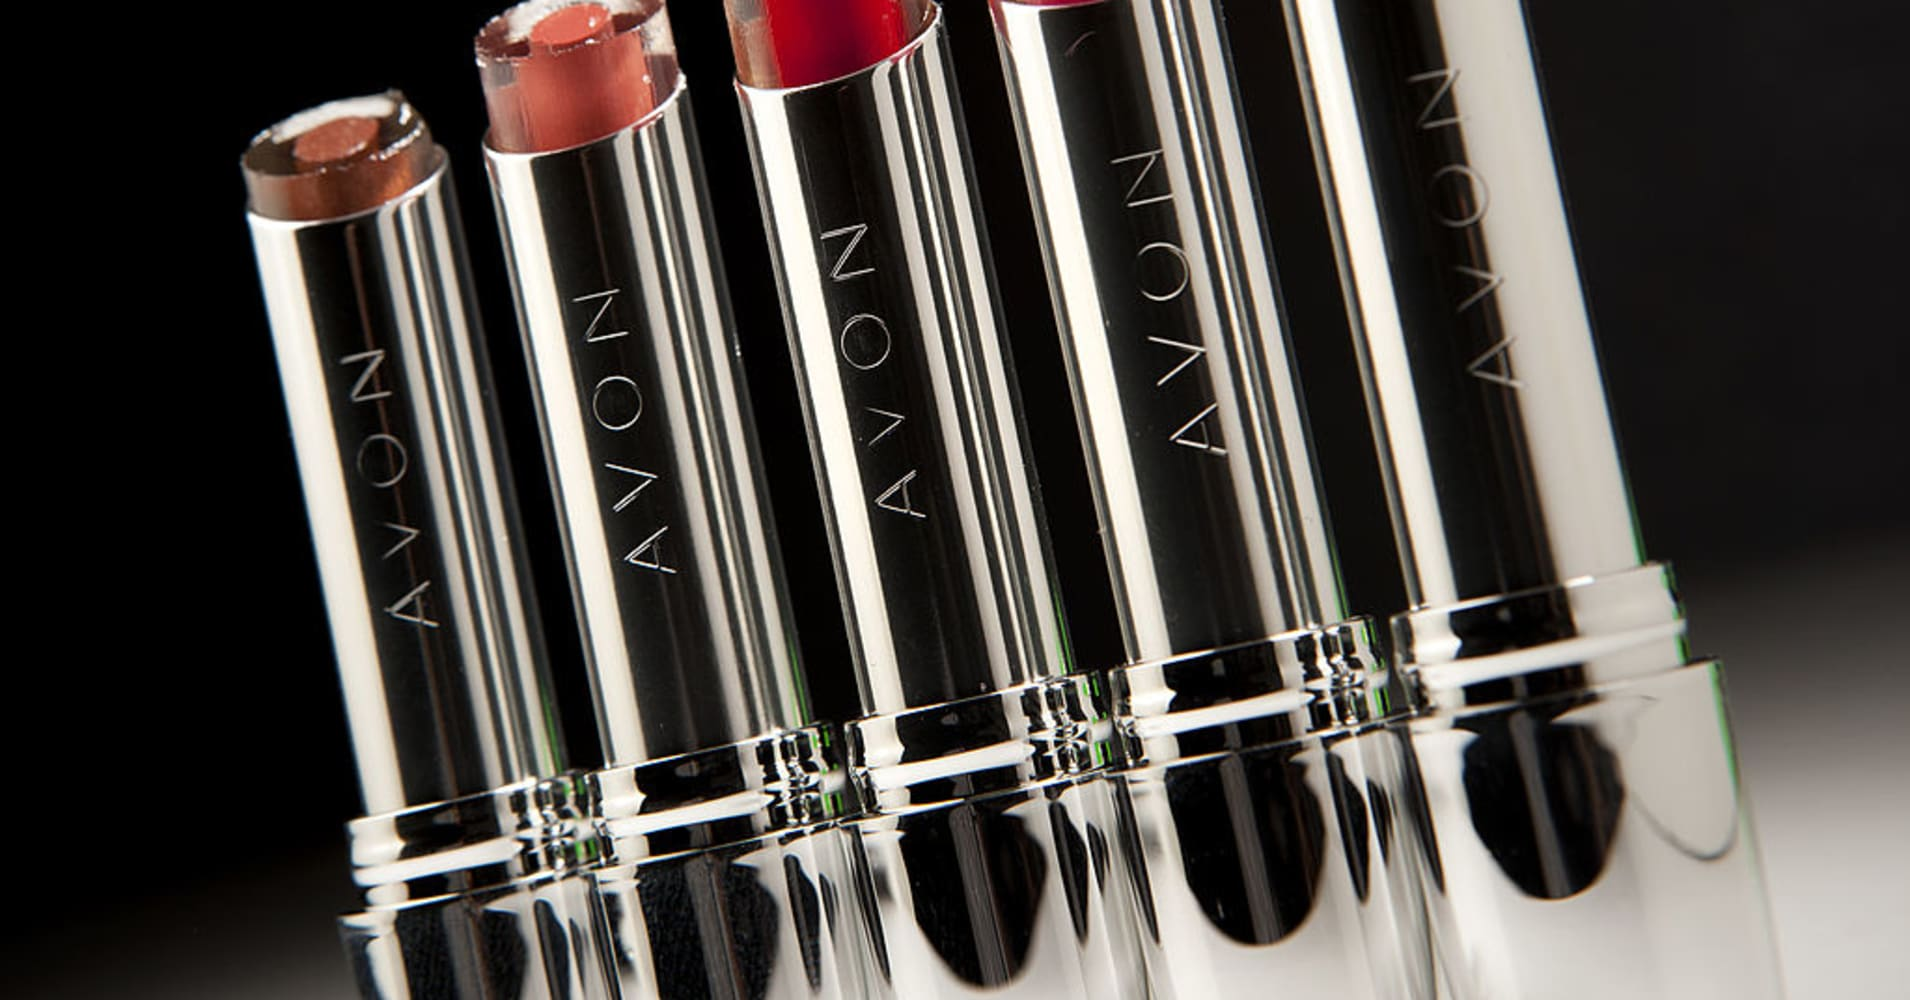 Avon surges on positive comments from longtime value investor Bill Miller